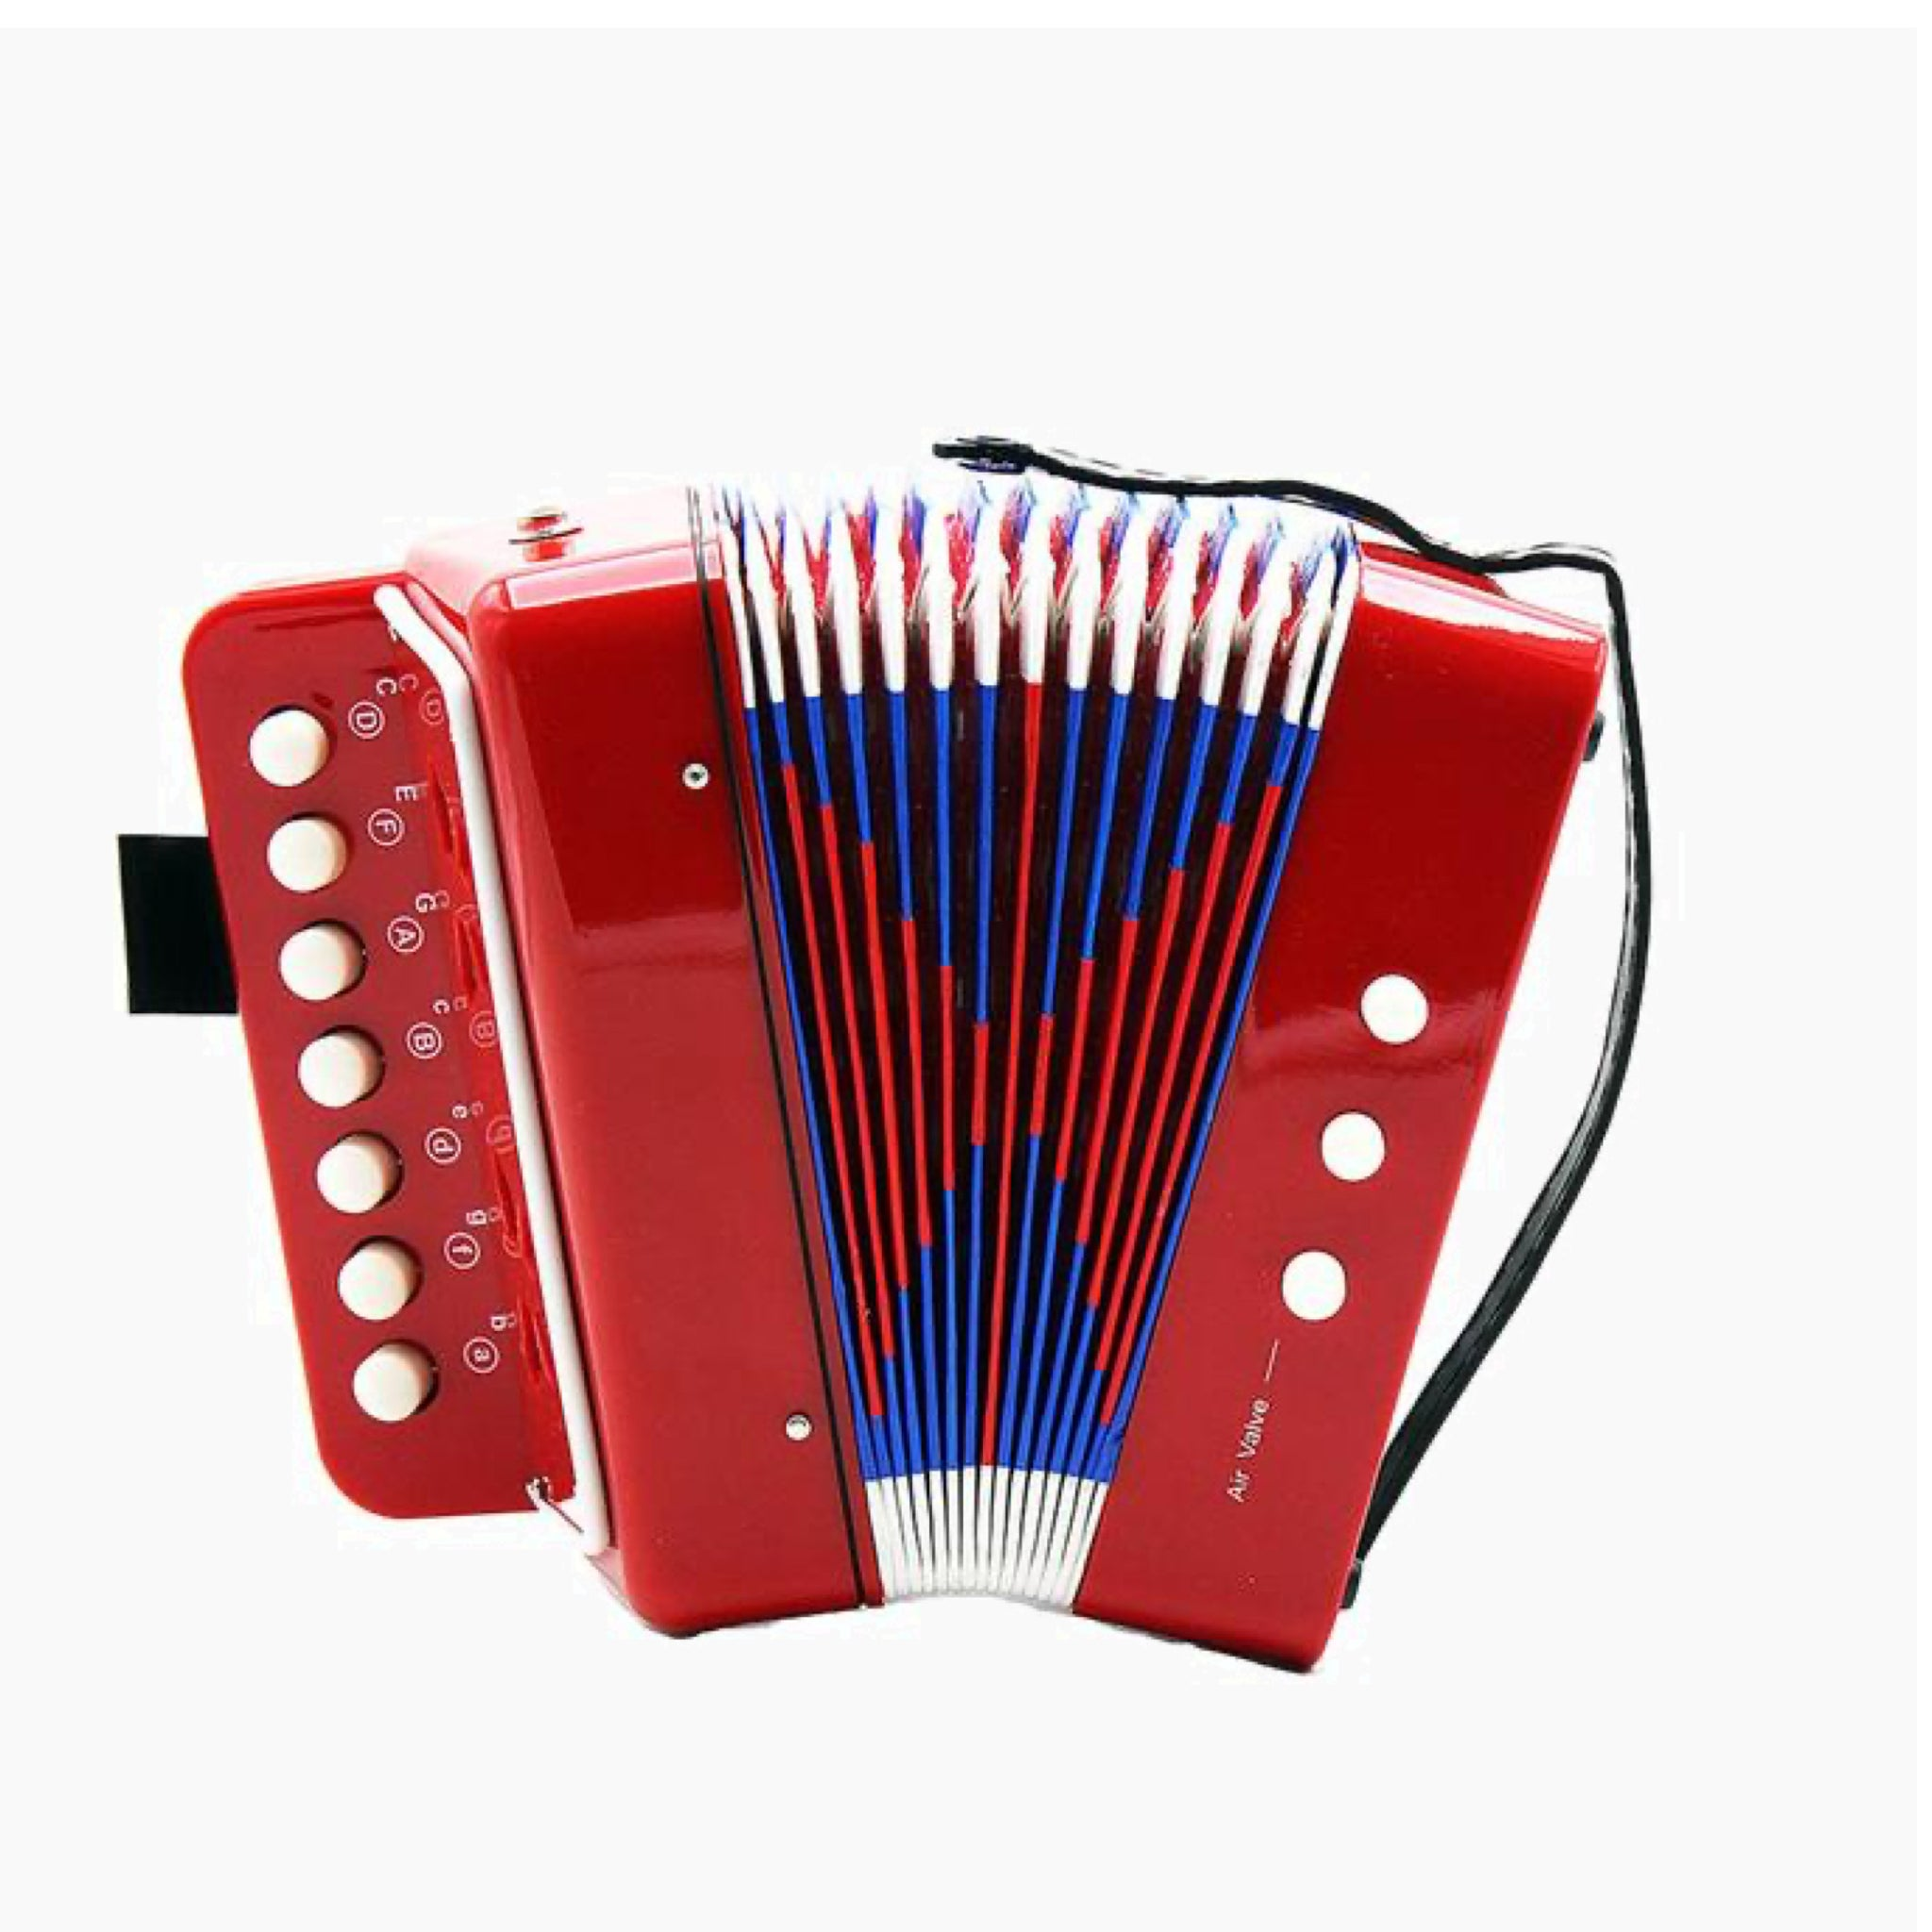 Mini Small Red Accordion 17-Key 8 Bass Educational Musical Instrument Rhythm Band Toy for Kids Children Gift